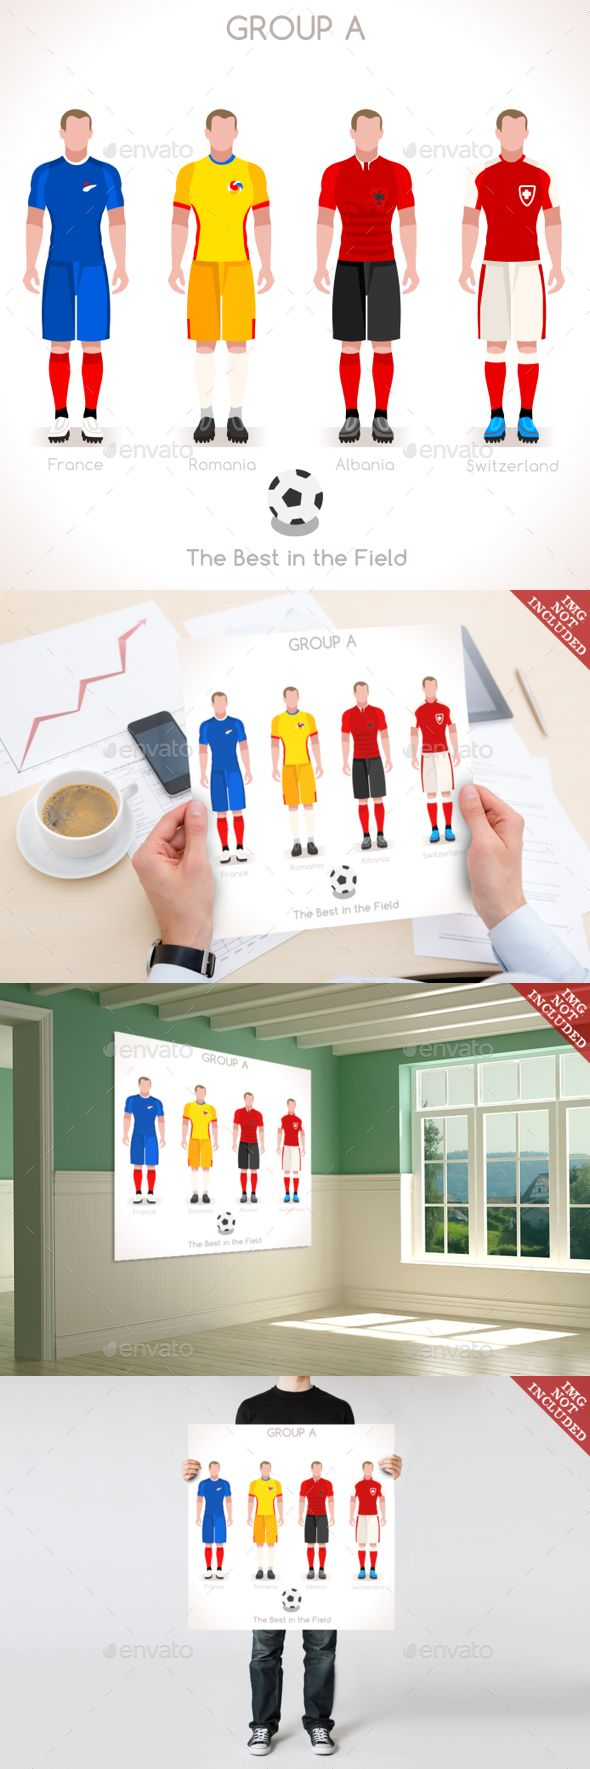 EURO 2016 GROUP A Championship by aurielaki Championship Infographic Qualified Soccer Players GROUP A. Football Game jersey flags of final participating countries. Flat Peopl